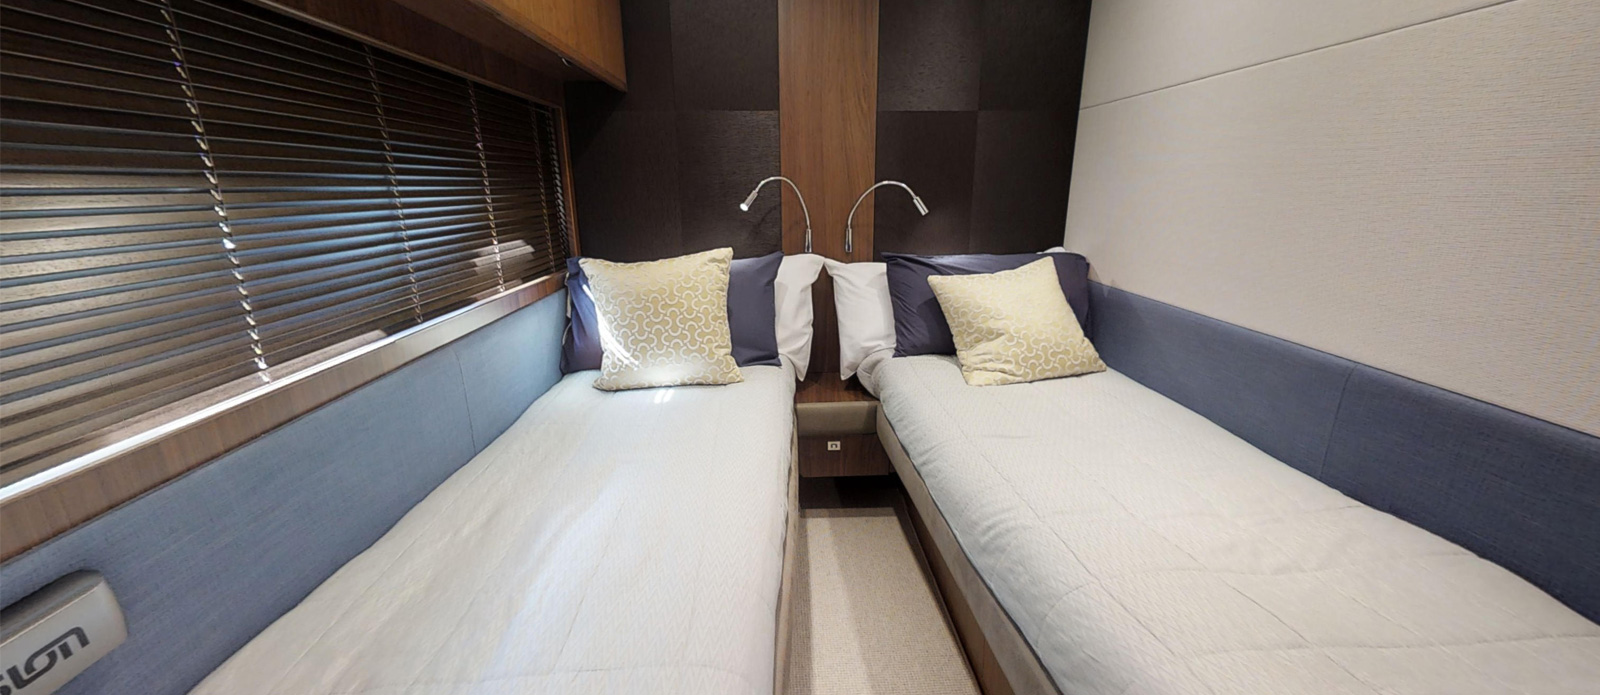 Princess 72 Blonde Moment Twin Cabin - For Sale with Bristow-Holmes